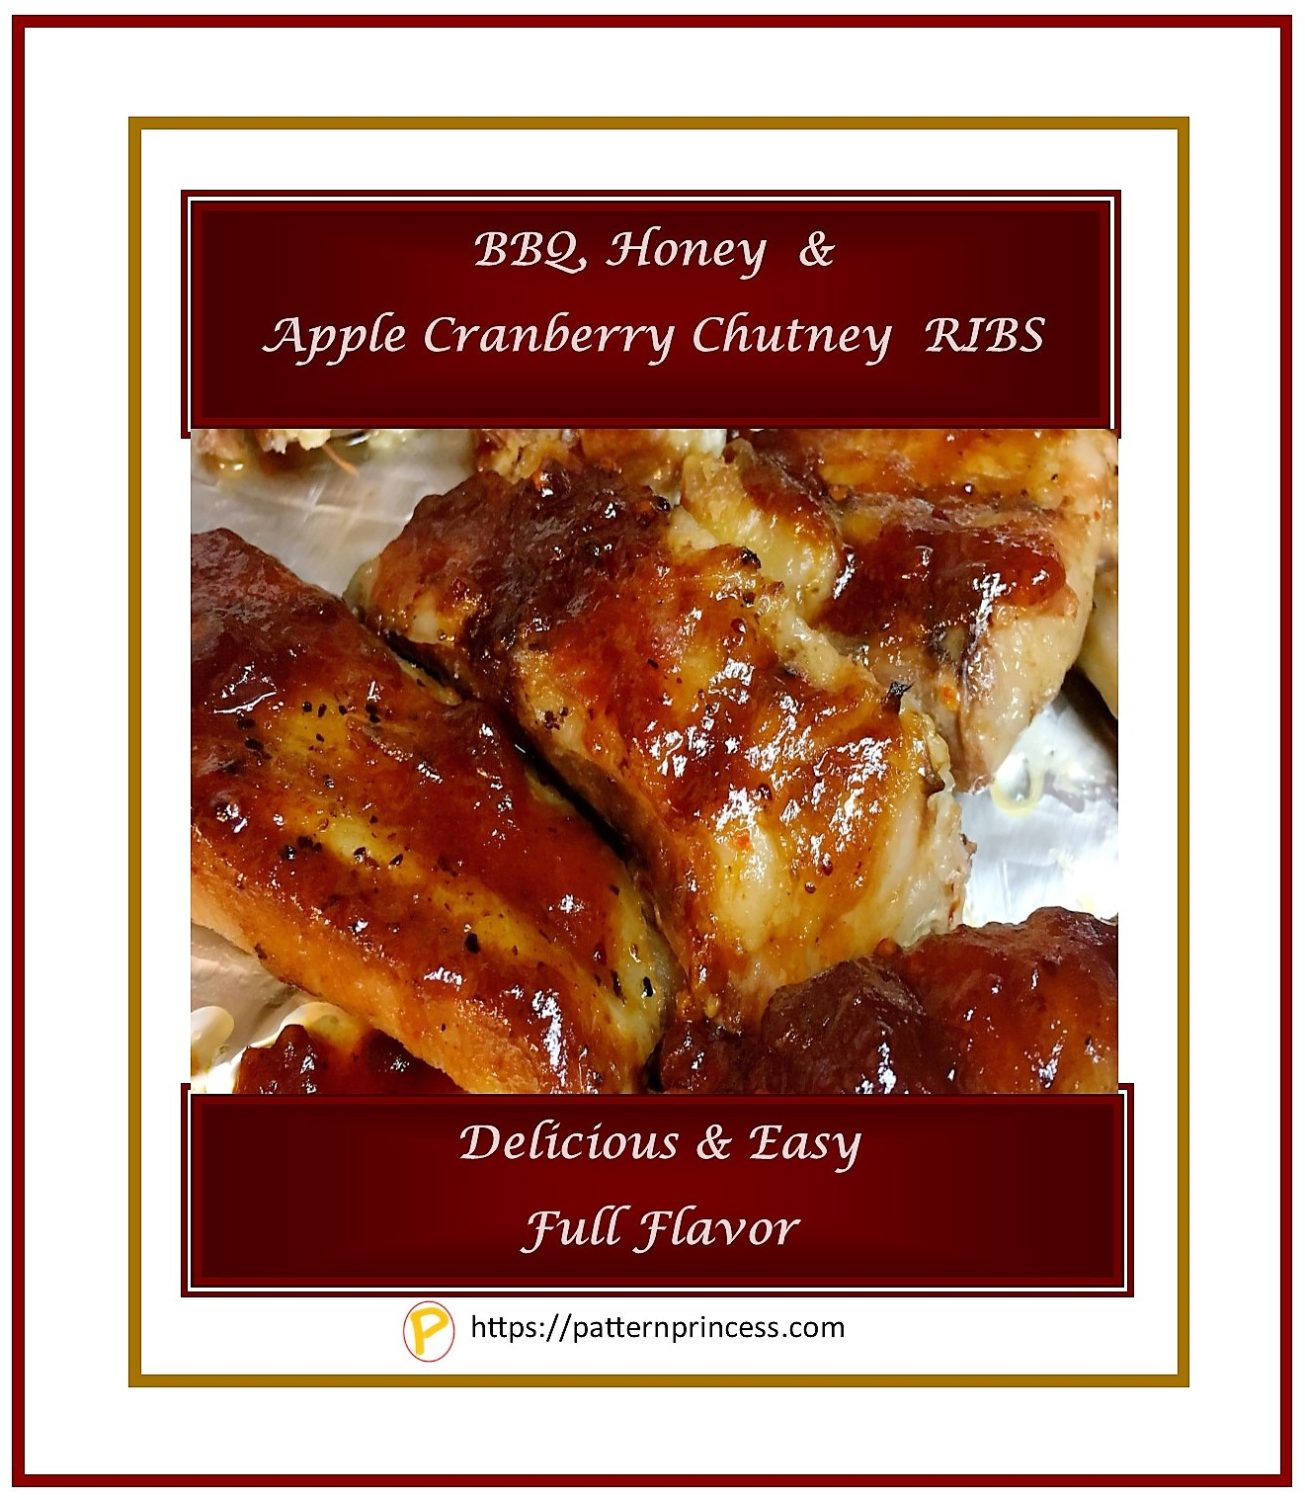 BBQ Honey Apple Cranberry Chutney RIBS 1